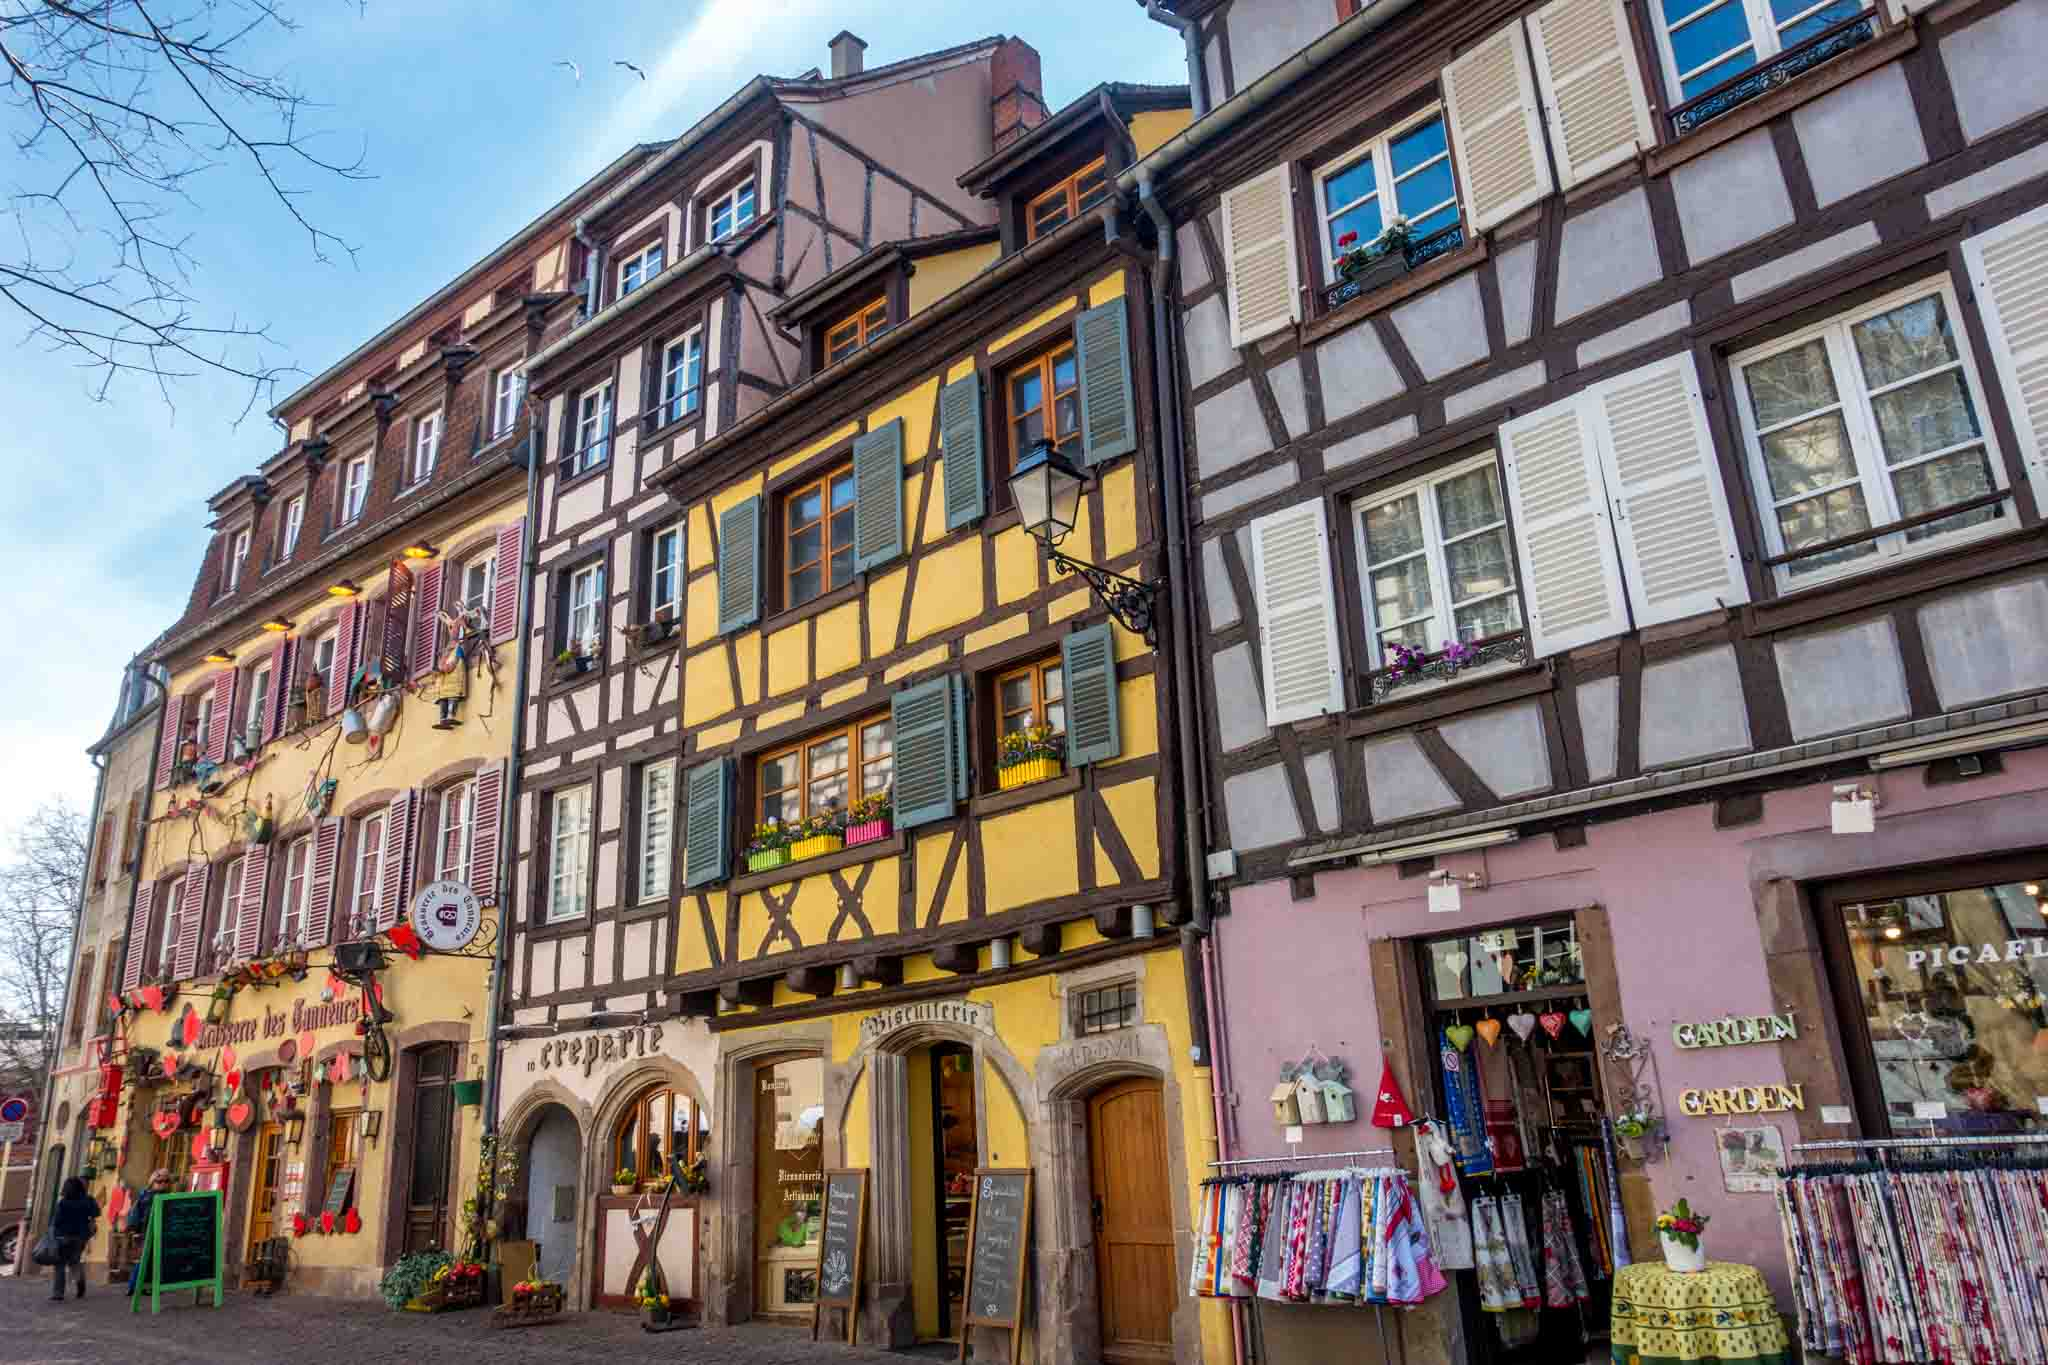 Shops along colorful Rue des Tanneurs in Colmar, France